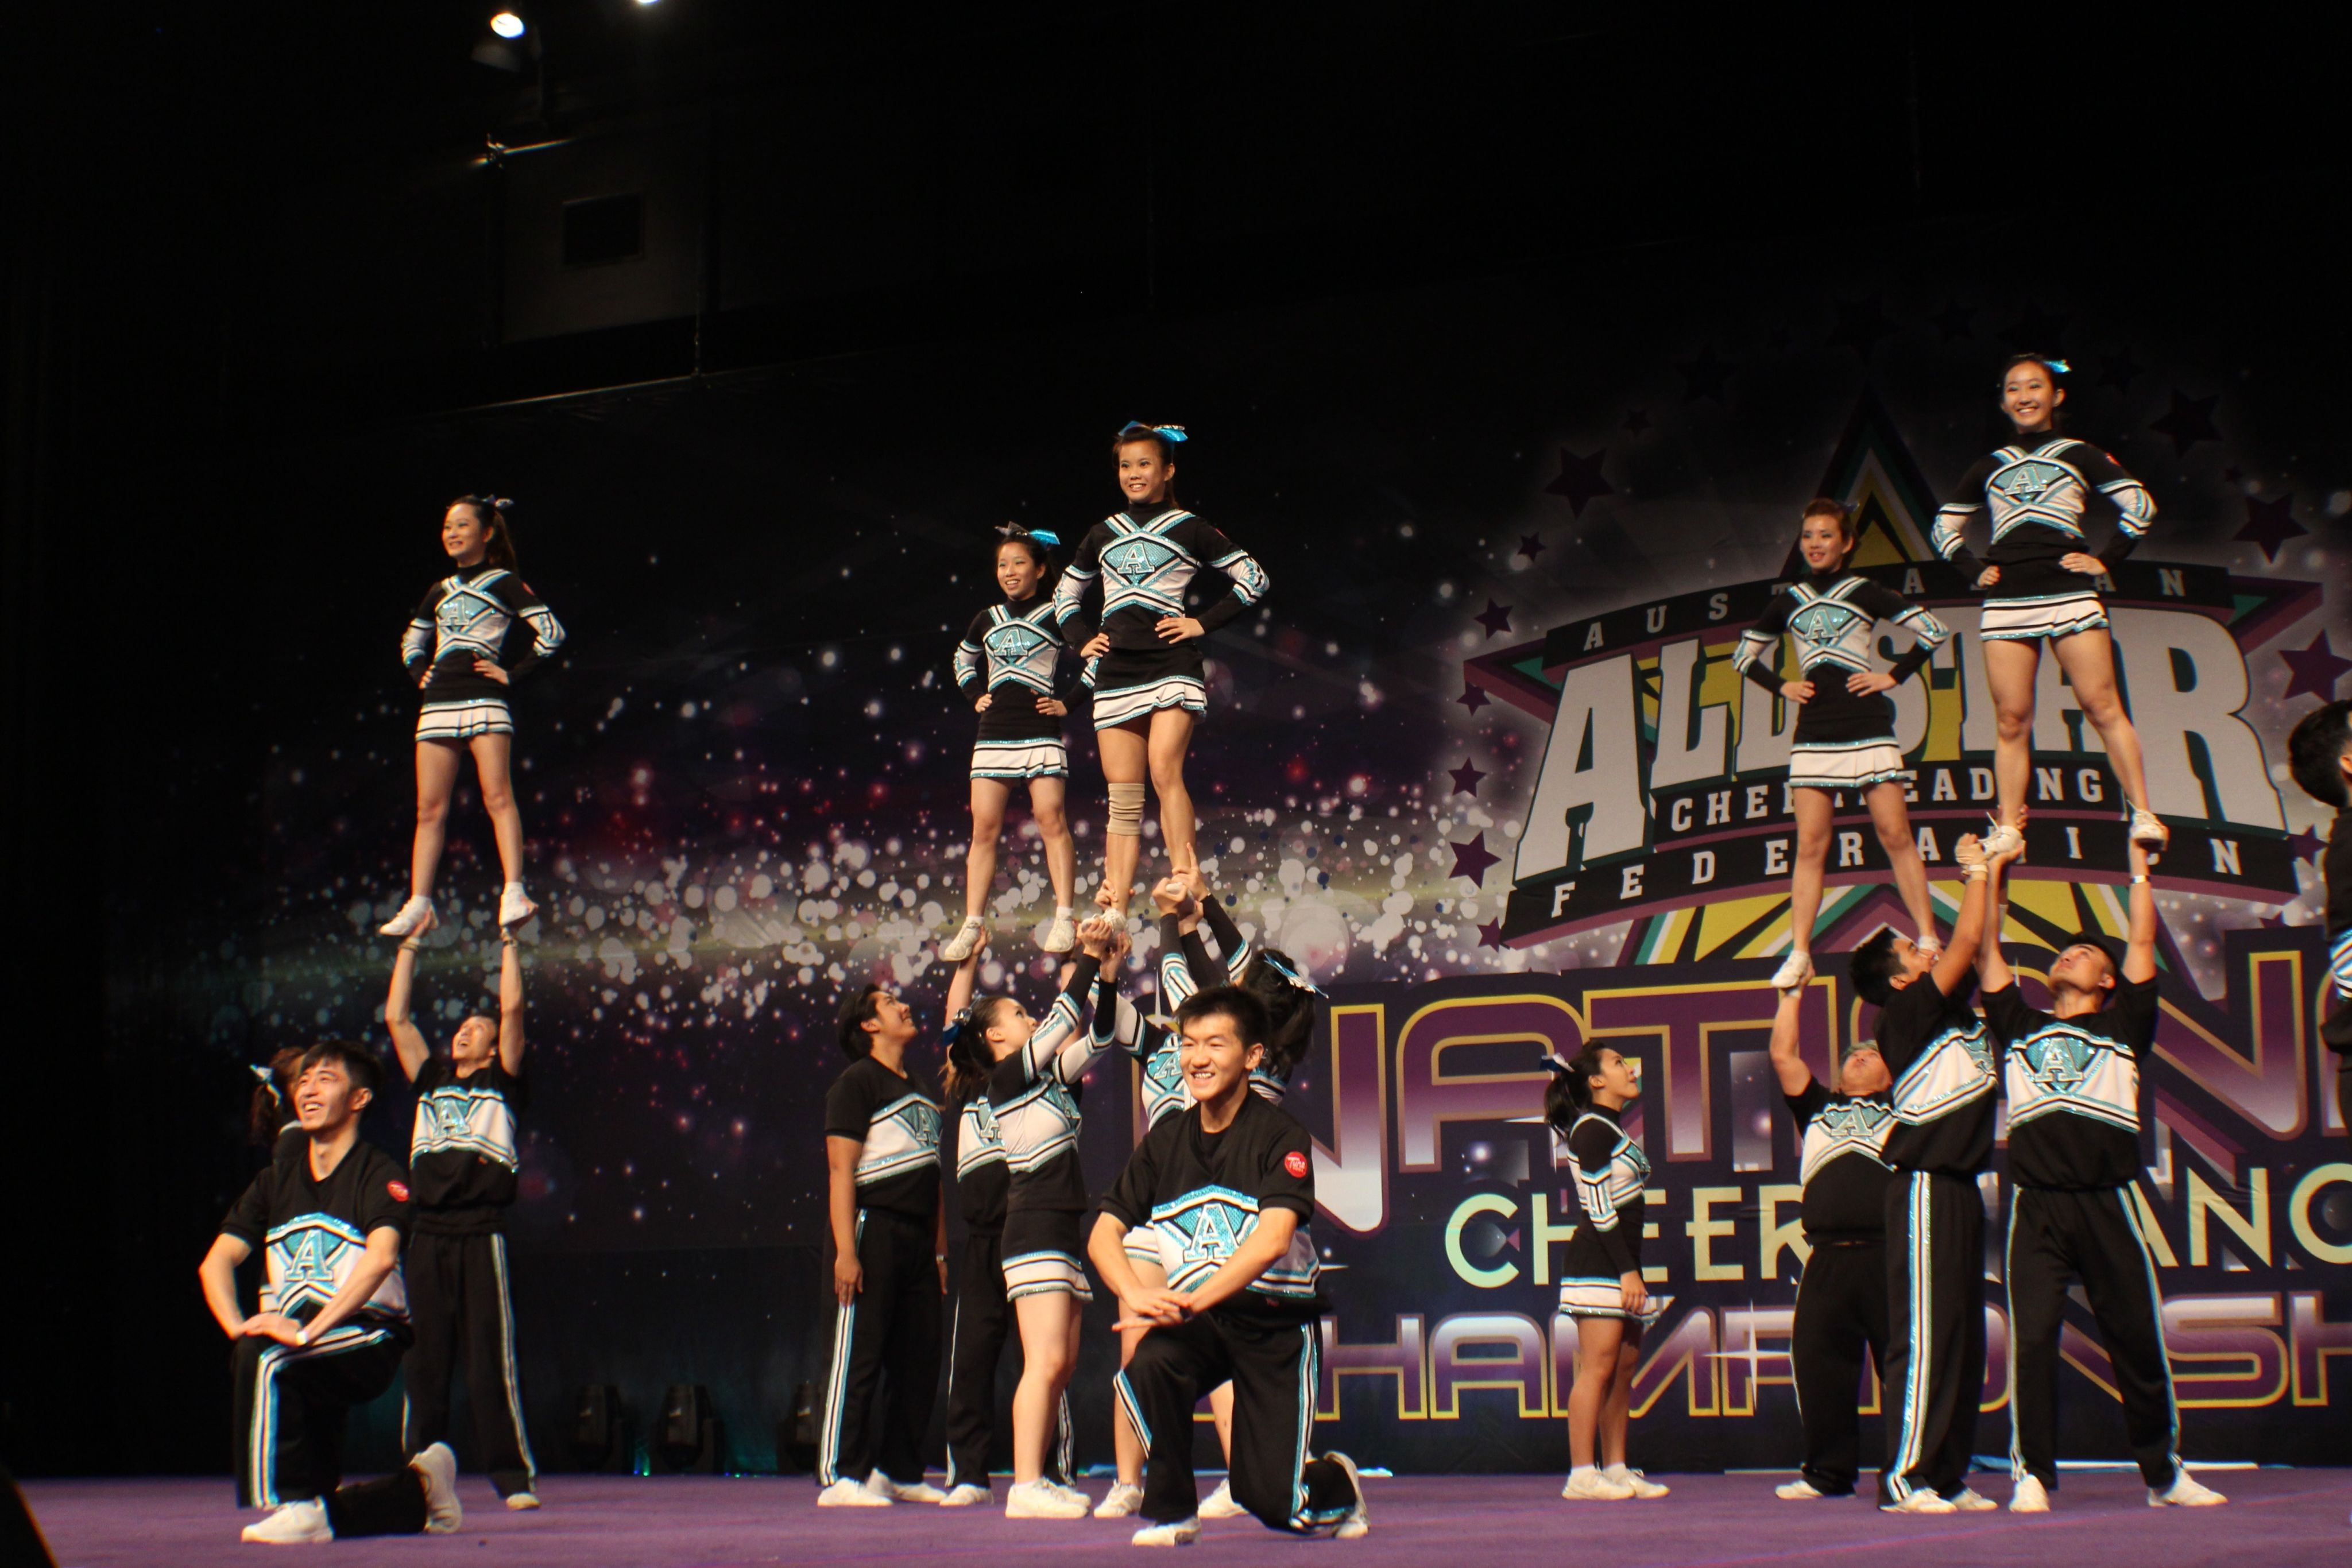 The Awesome All-Stars from Malaysia doing us proud with an excellent routine at the Australian All-Star Cheerleading Federation (AASCF) National Championship in Melbourne, Australia.